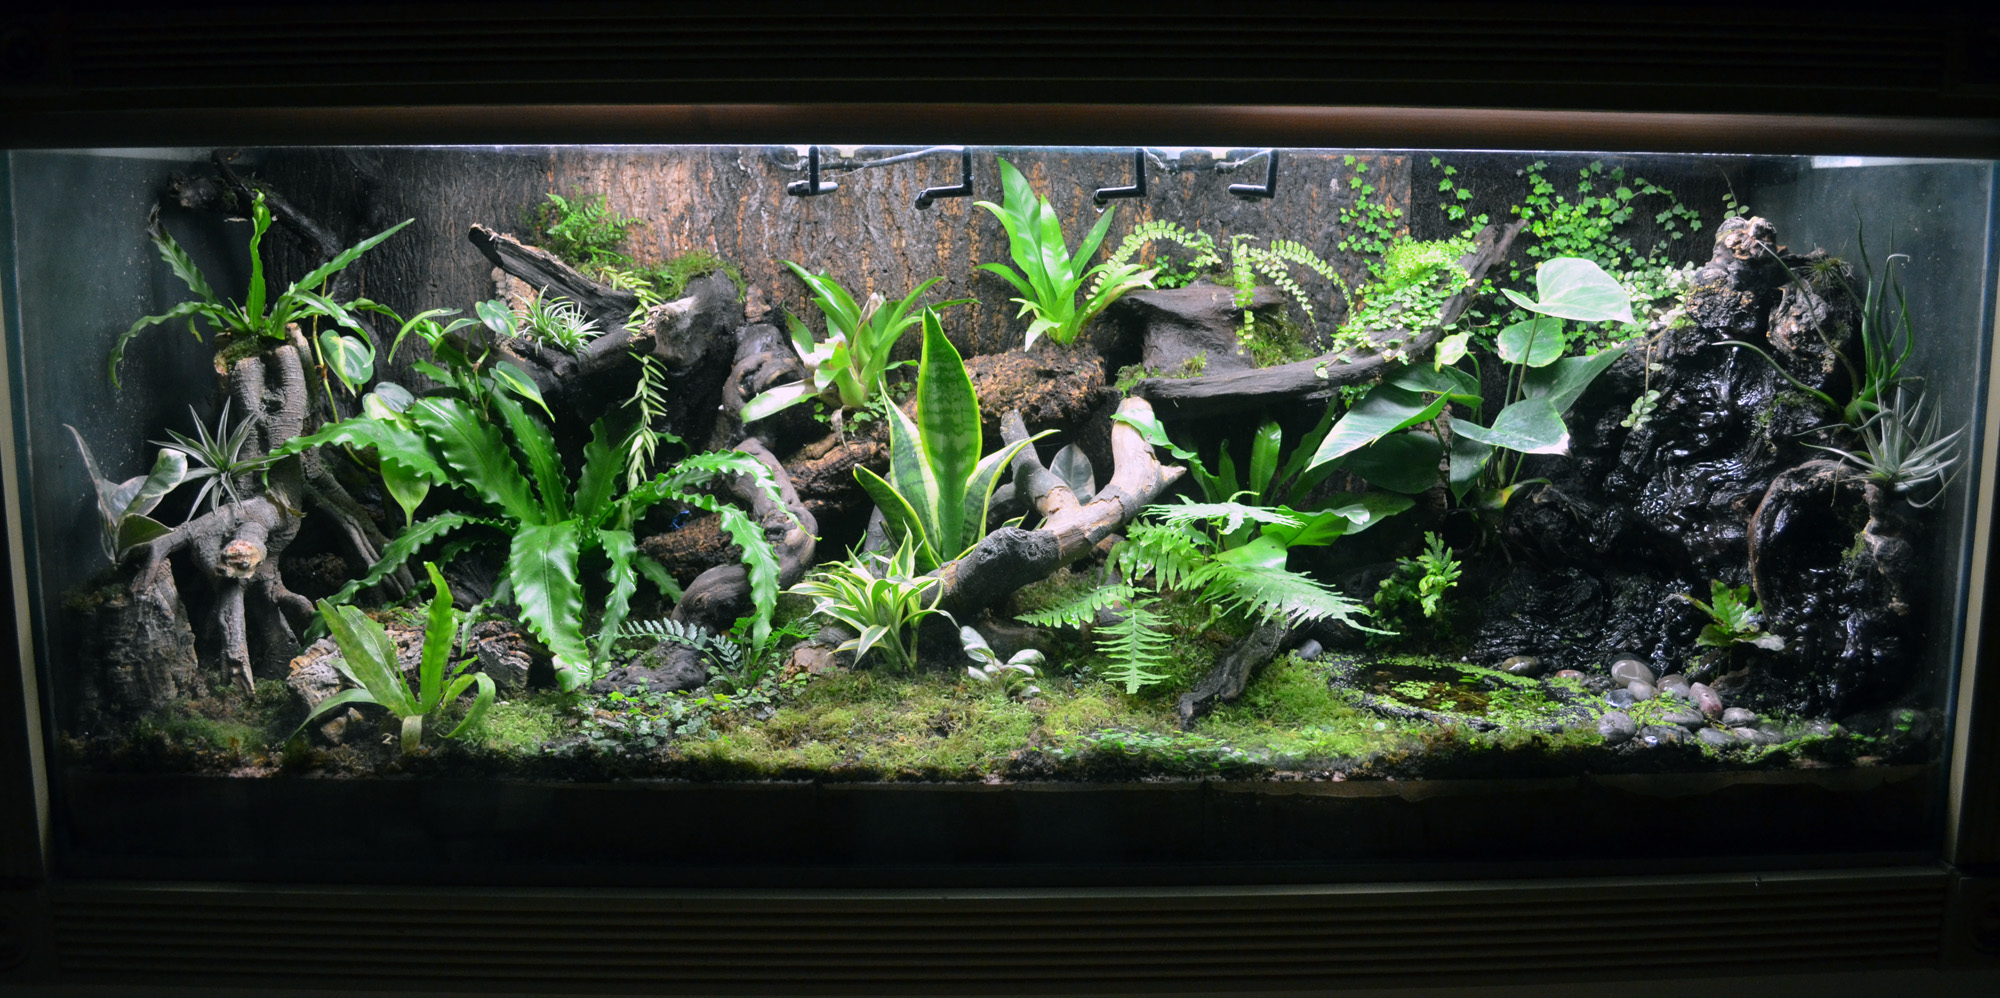 Matt S 120 Gallon In Wall Display Tank Dendroboard